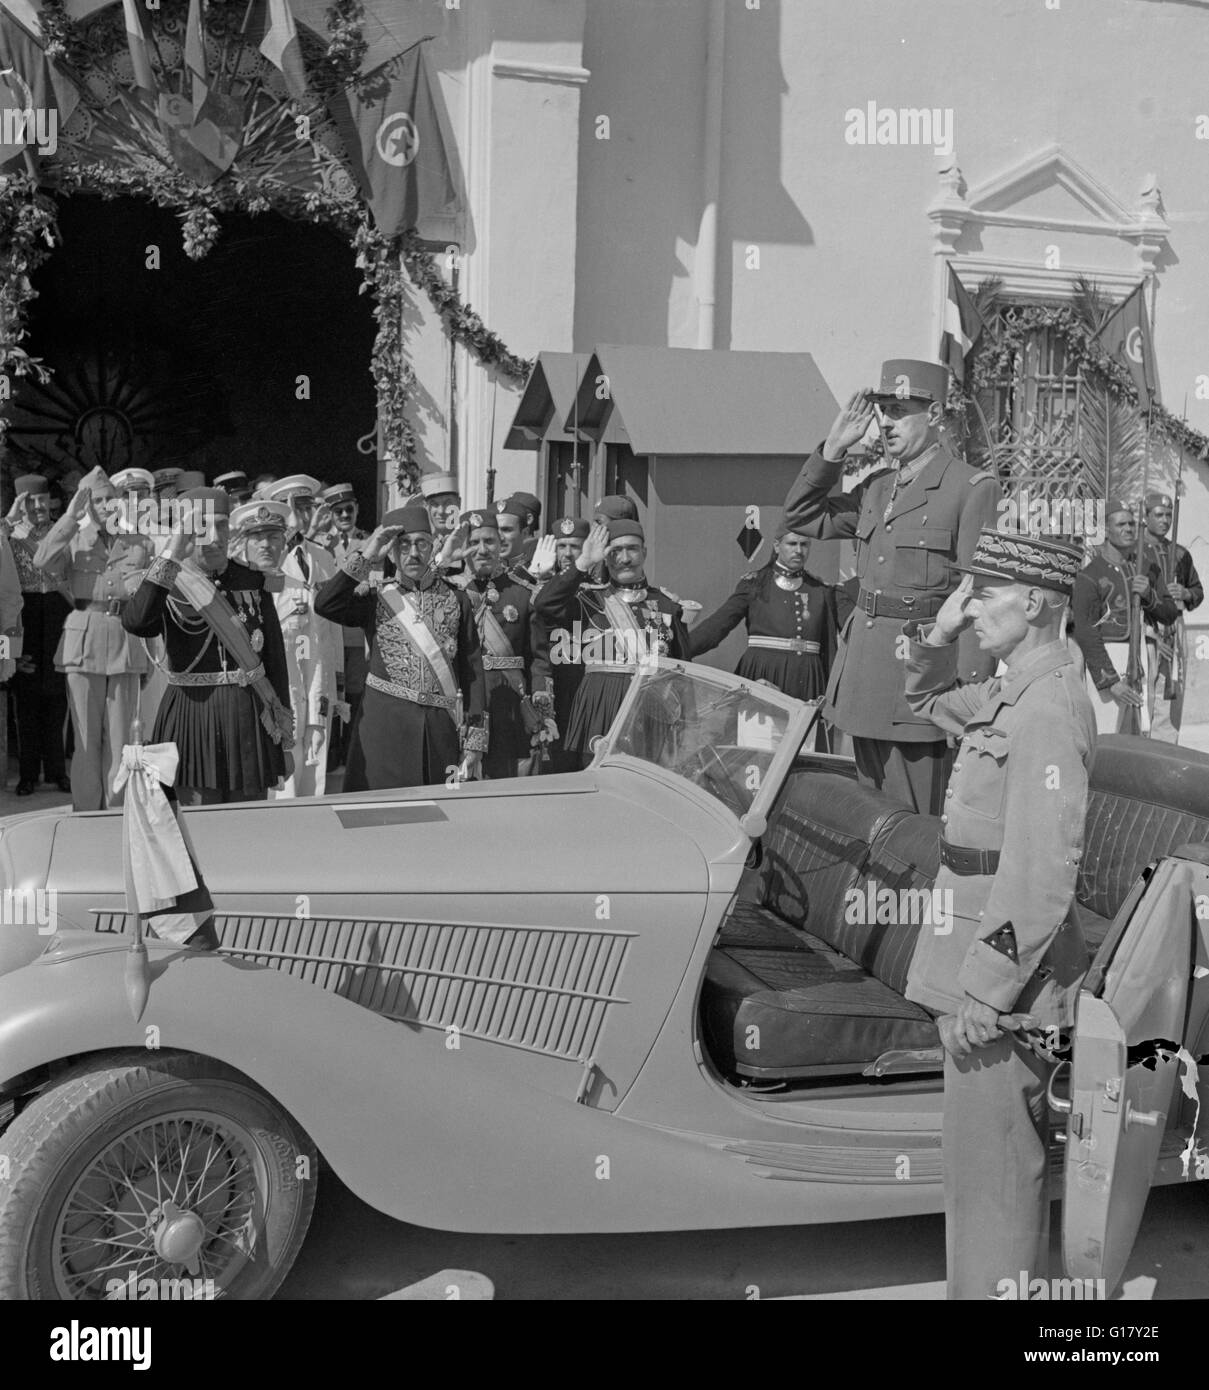 General Charles de Gaulle, Accompanied by General Charles Mast, Saluting as Band Plays Marseillaise Outside Summer - Stock Image